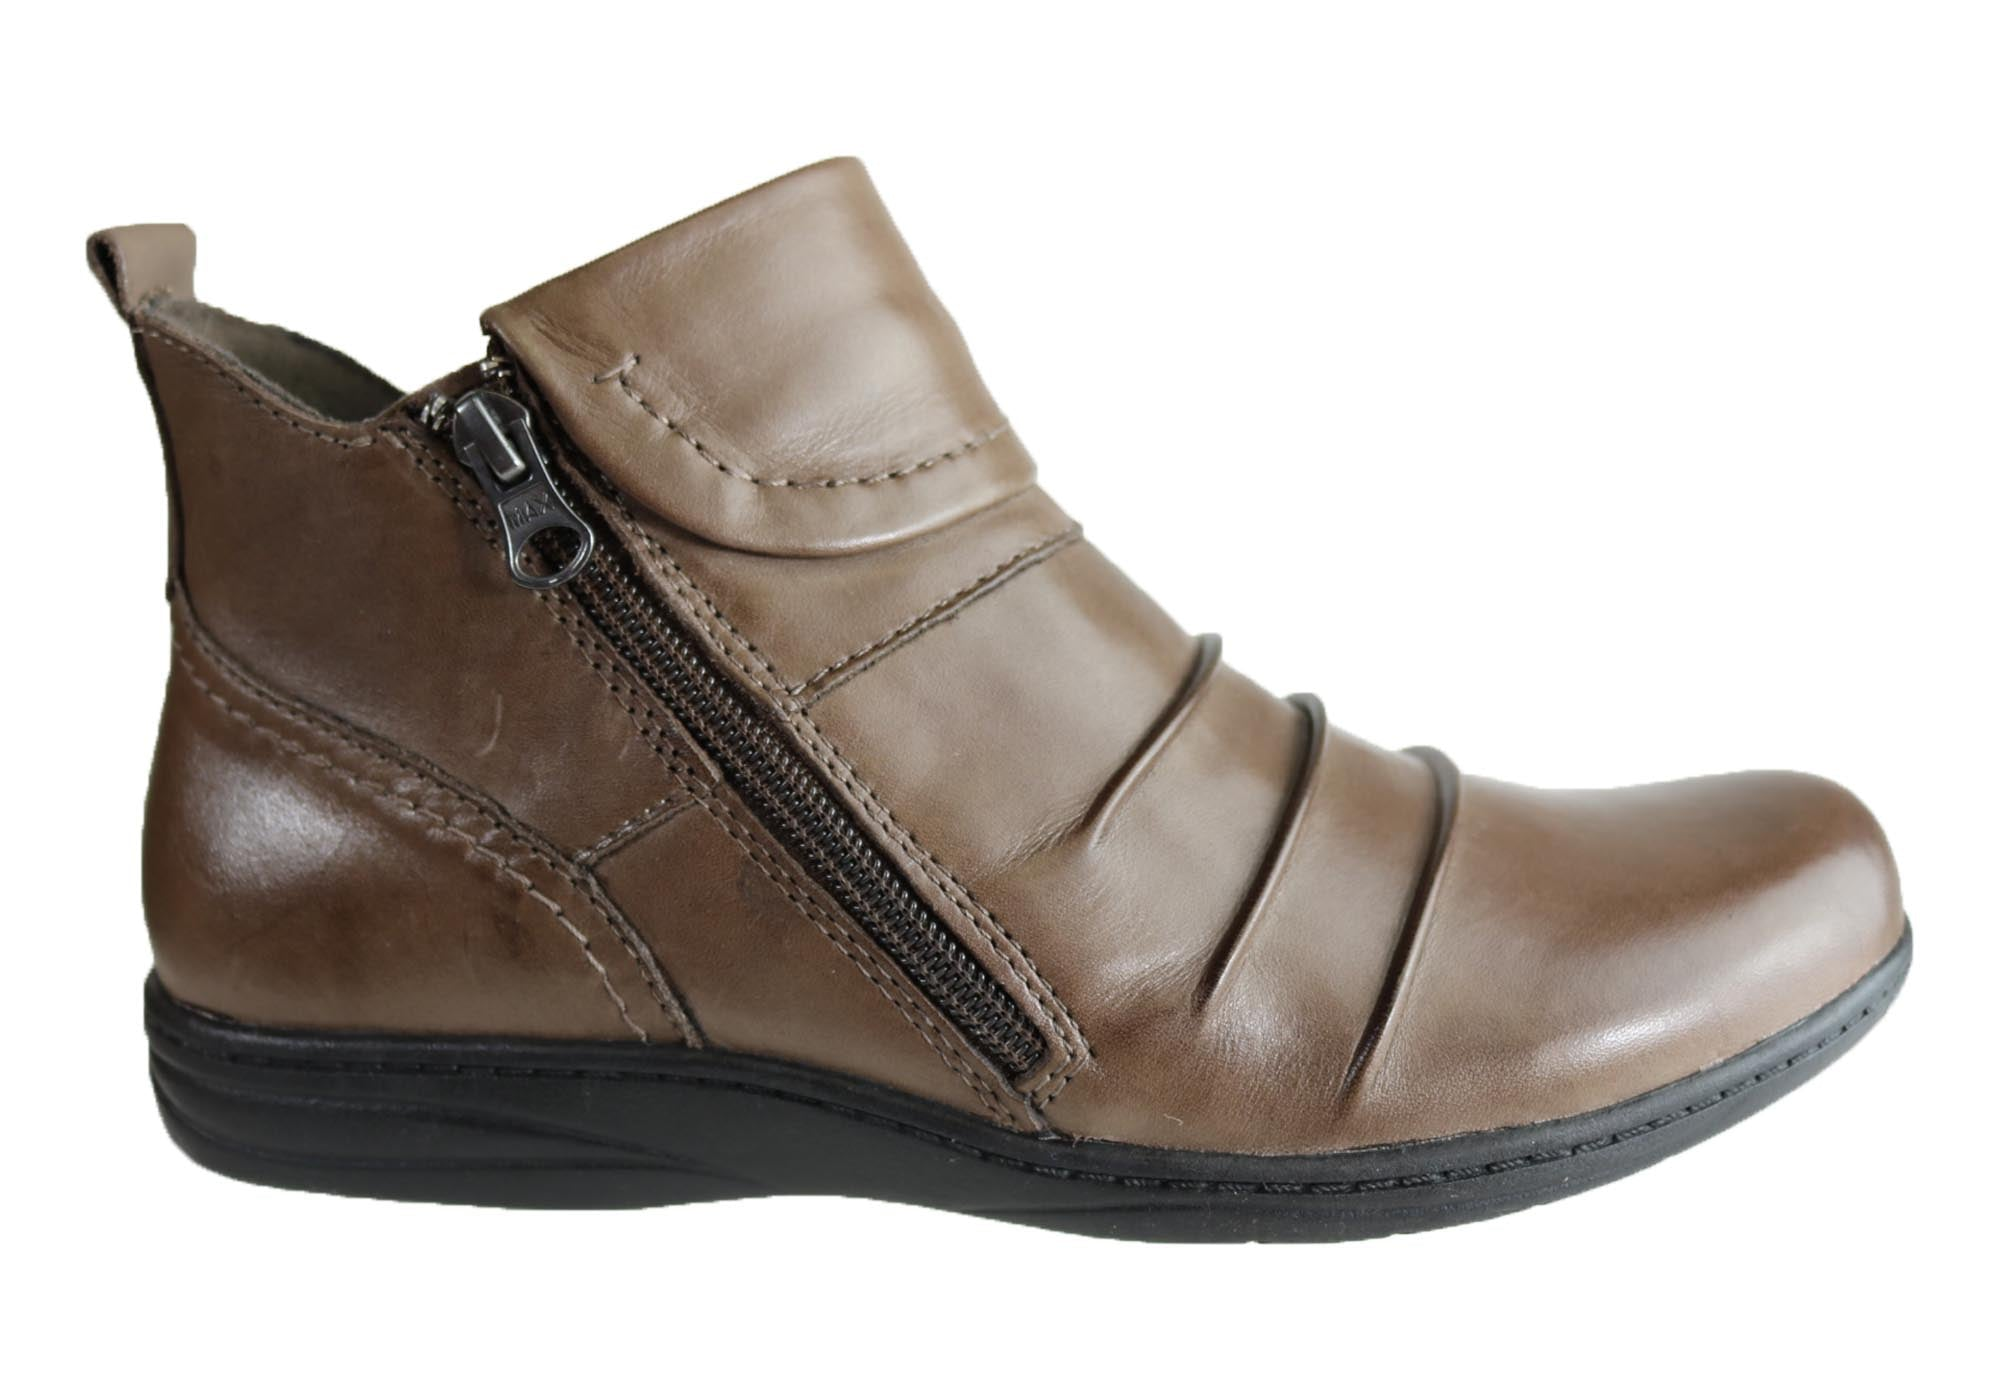 e7be01cb45d1d Home Planet Shoes Ripple Womens Comfort Leather Ankle Boots. Taupe Brown ...